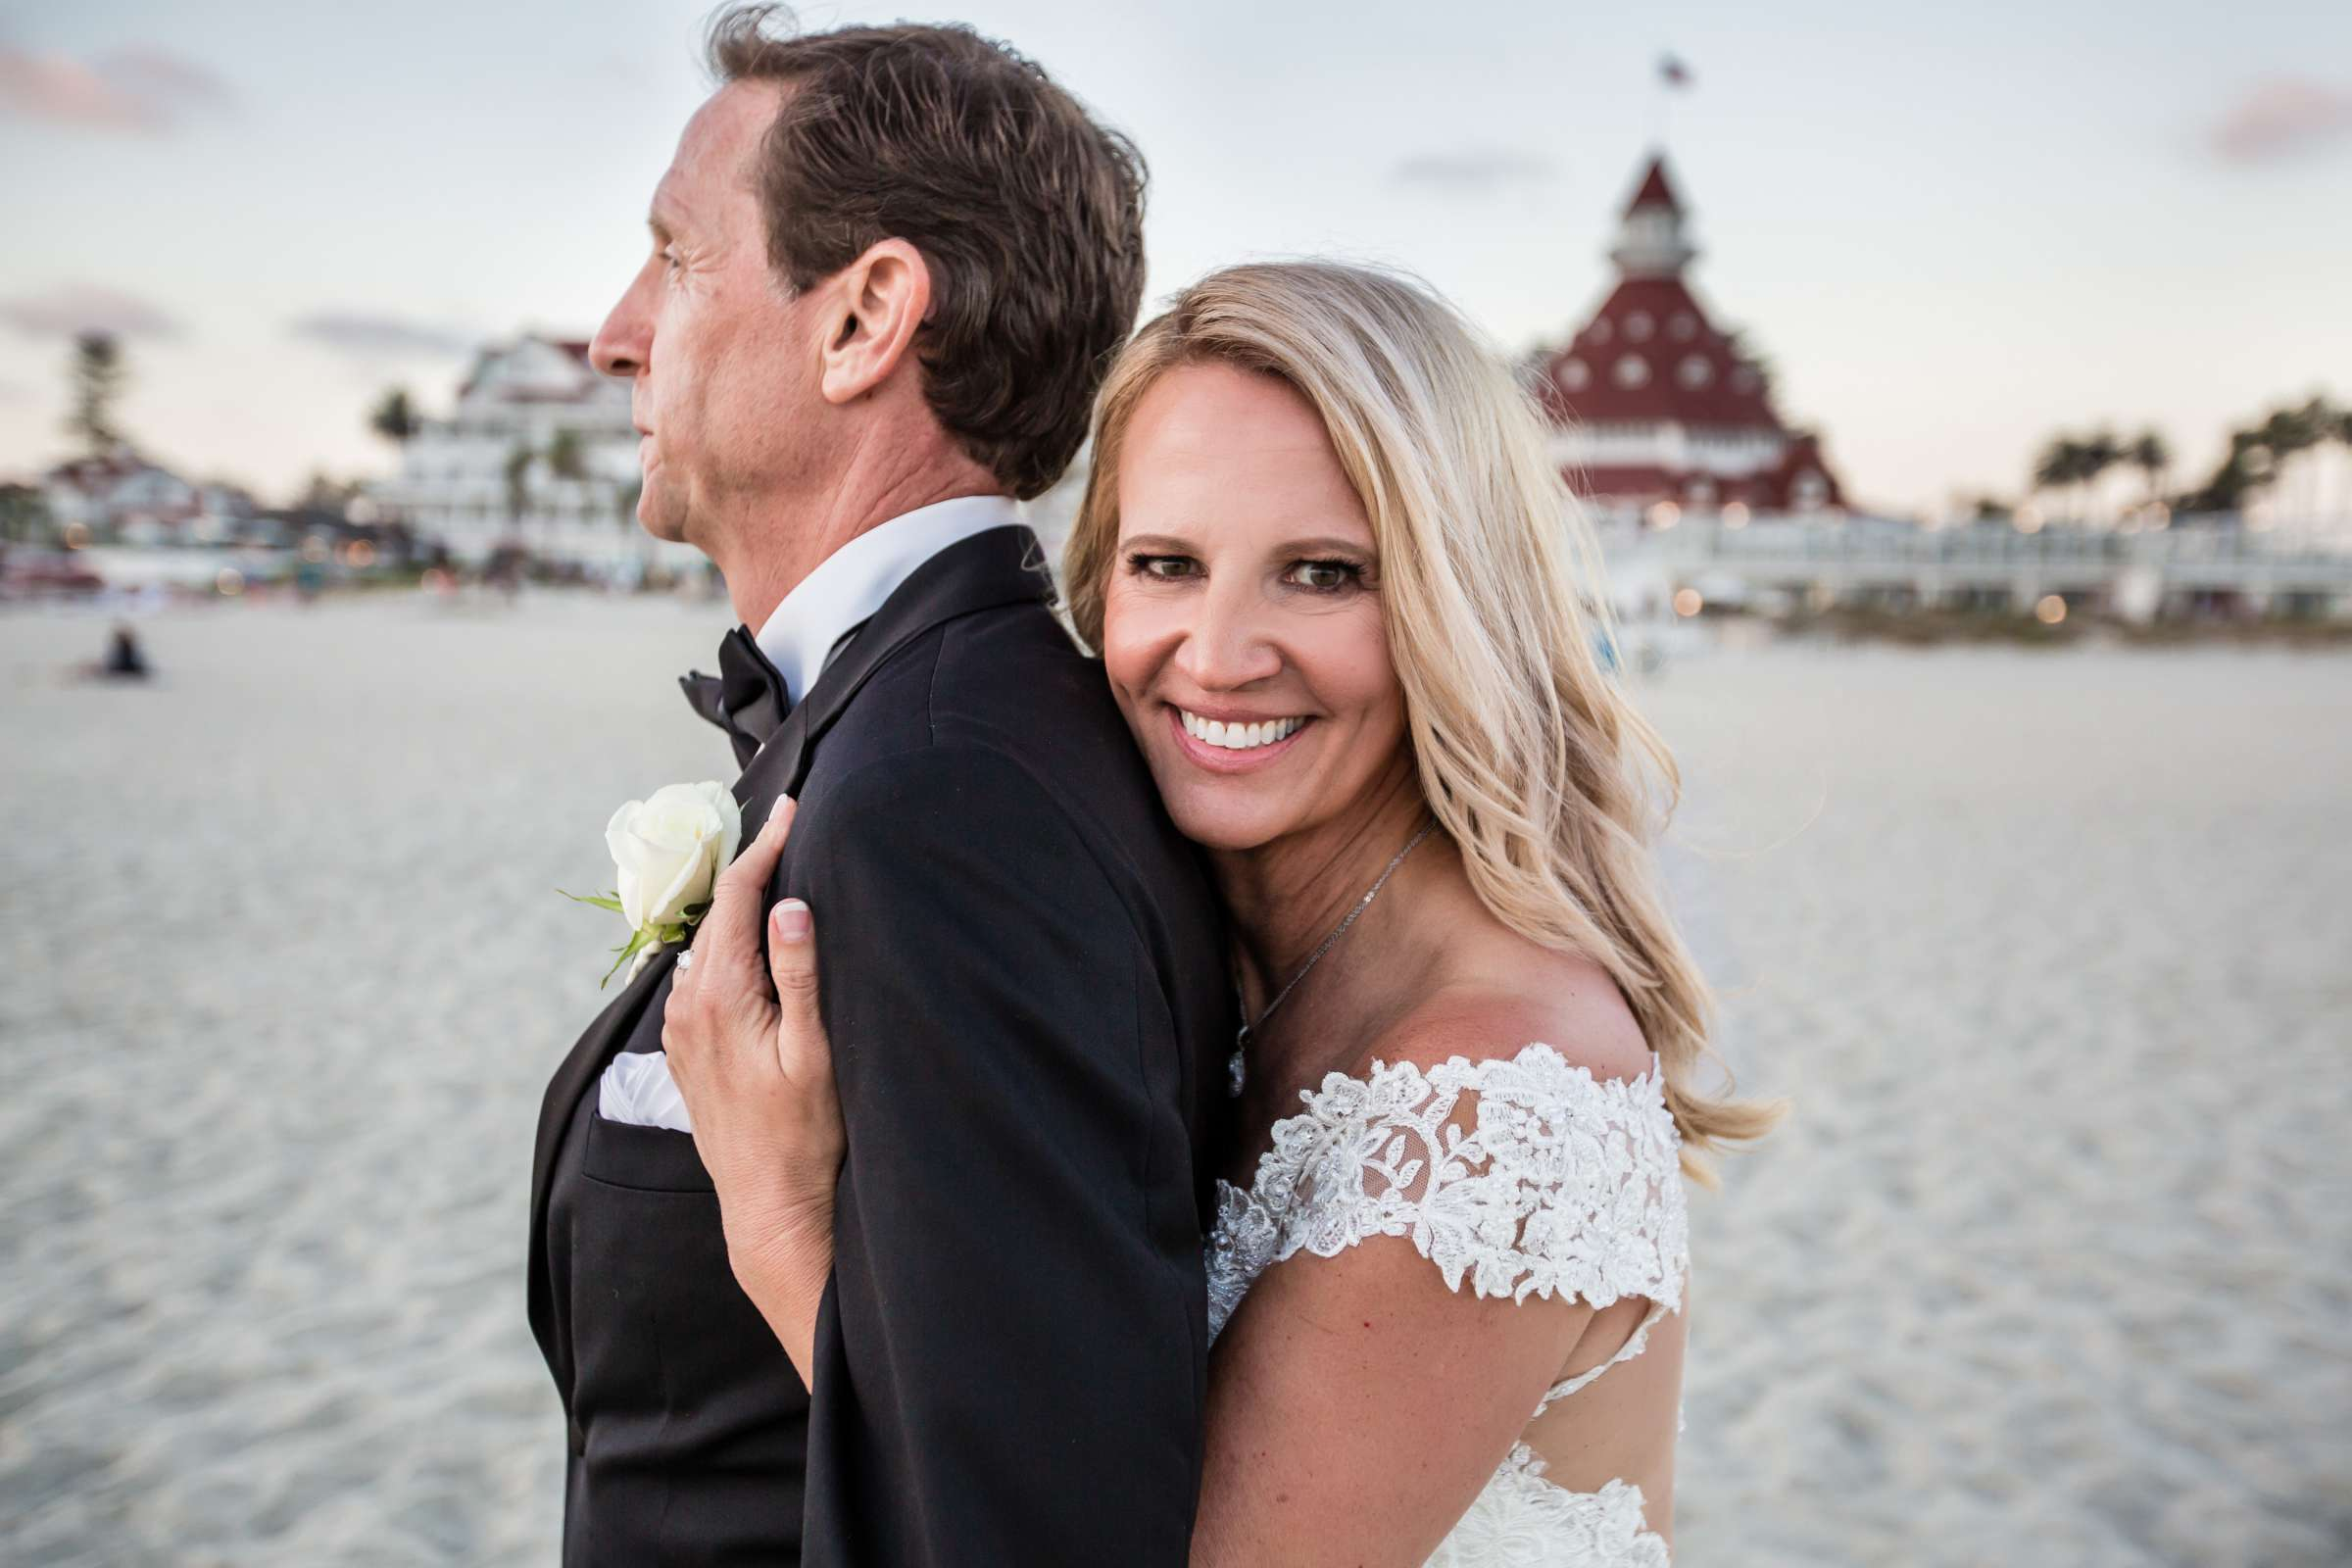 Hotel Del Coronado Wedding coordinated by Creative Affairs Inc, Diane and Paul Wedding Photo #78 by True Photography